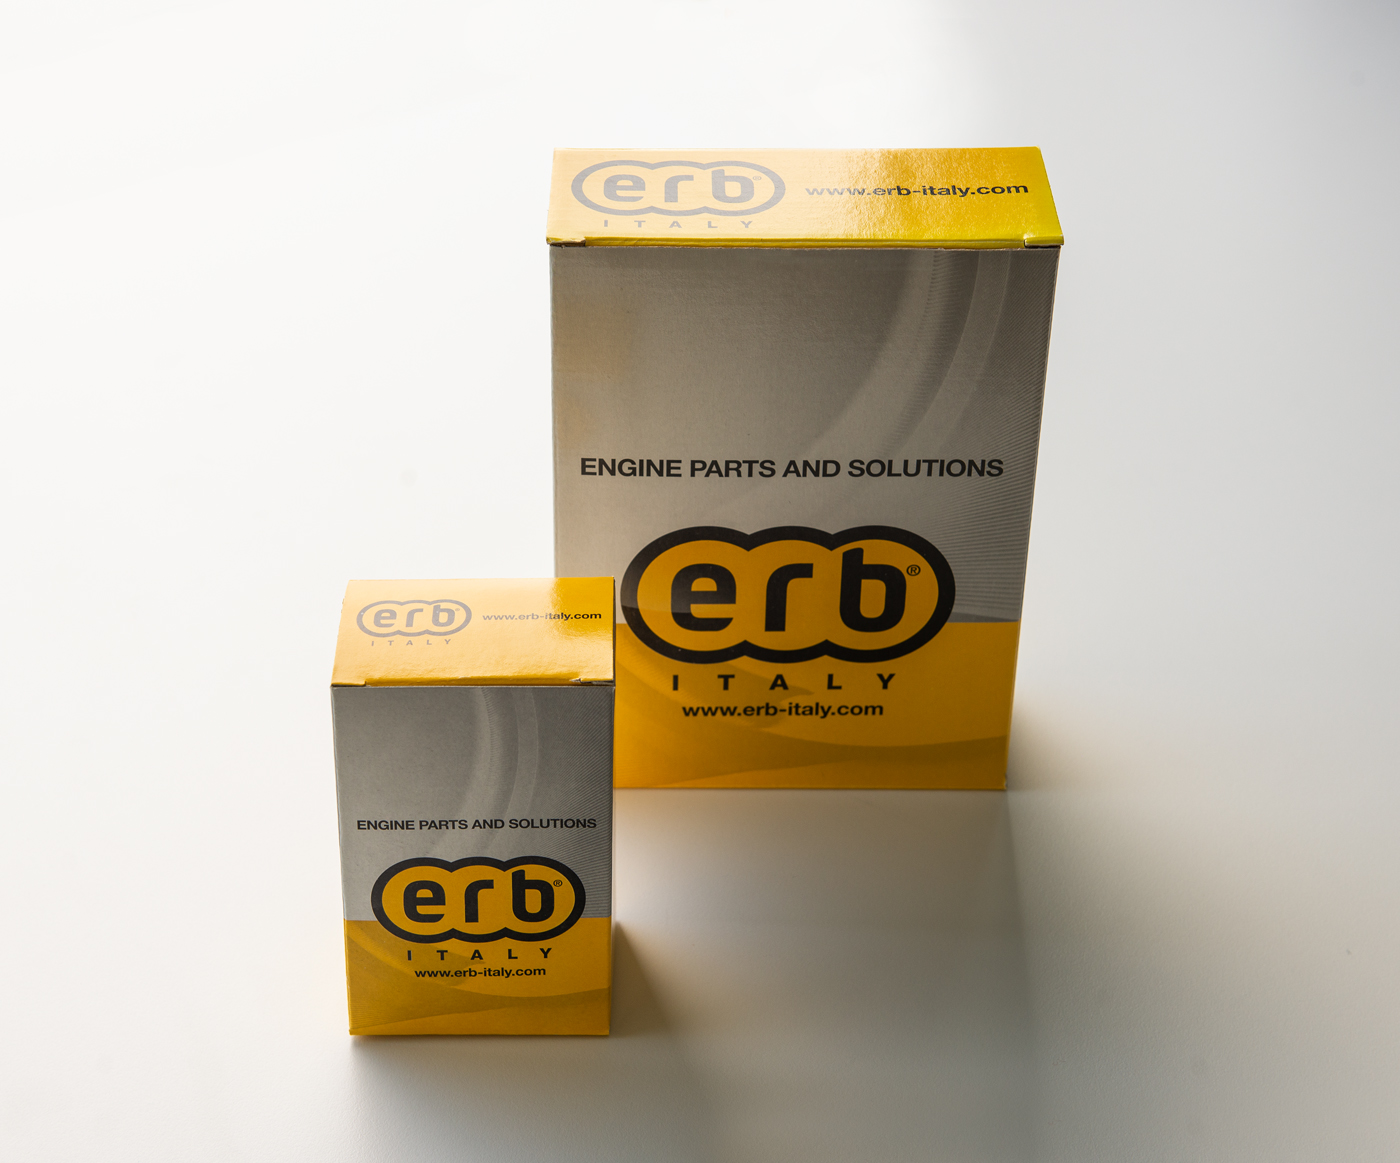 ERB - Packaging